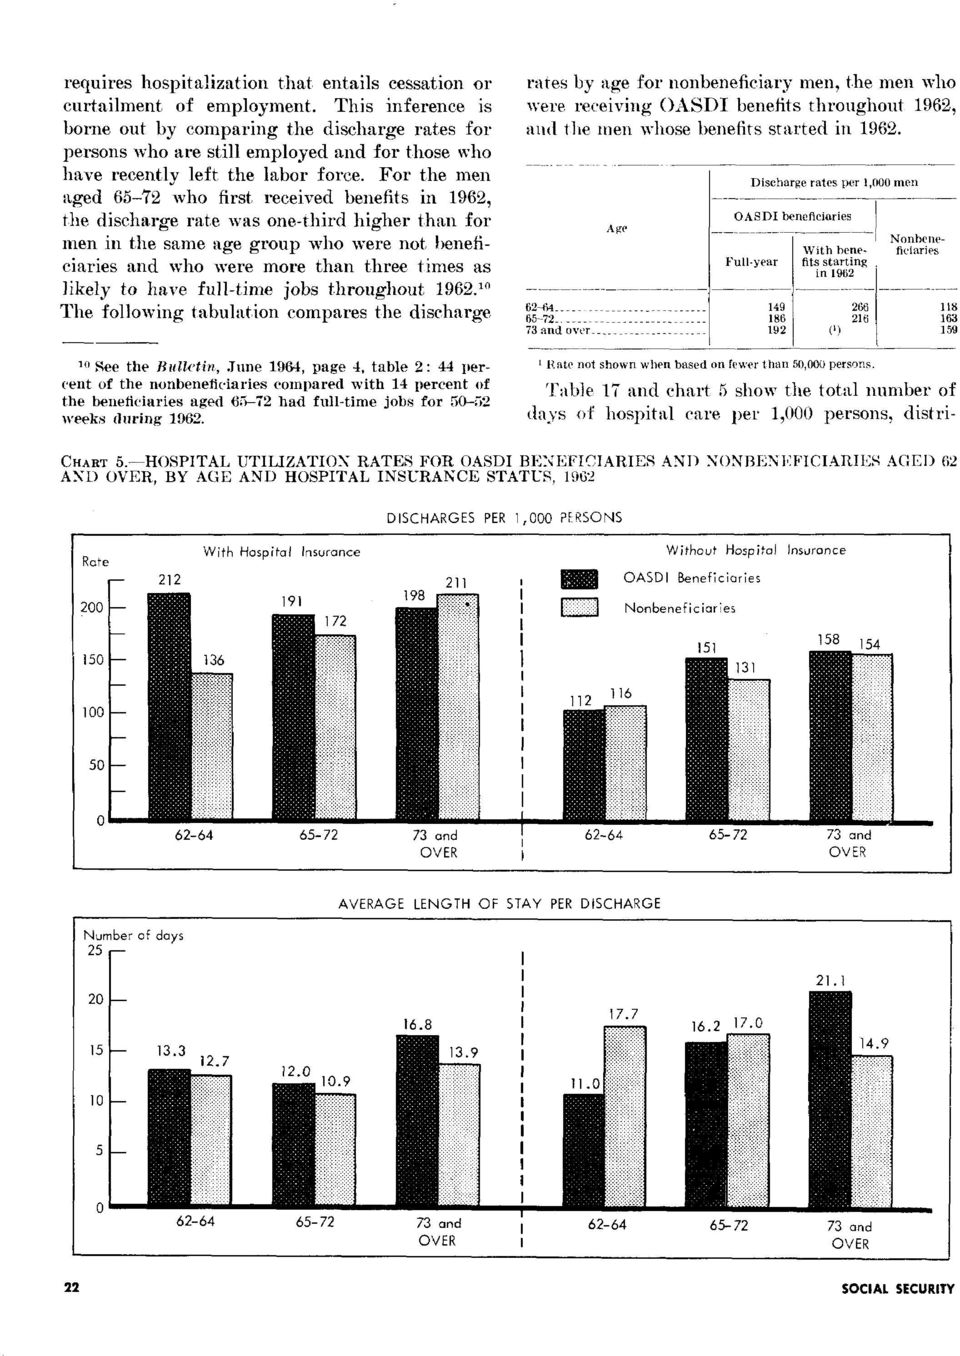 For the men aged 65-72 who first received benefits in 1962, the dischwge rat,e was one-third higher than for men in the same age group who were not beneficiaries and who were more than three times as